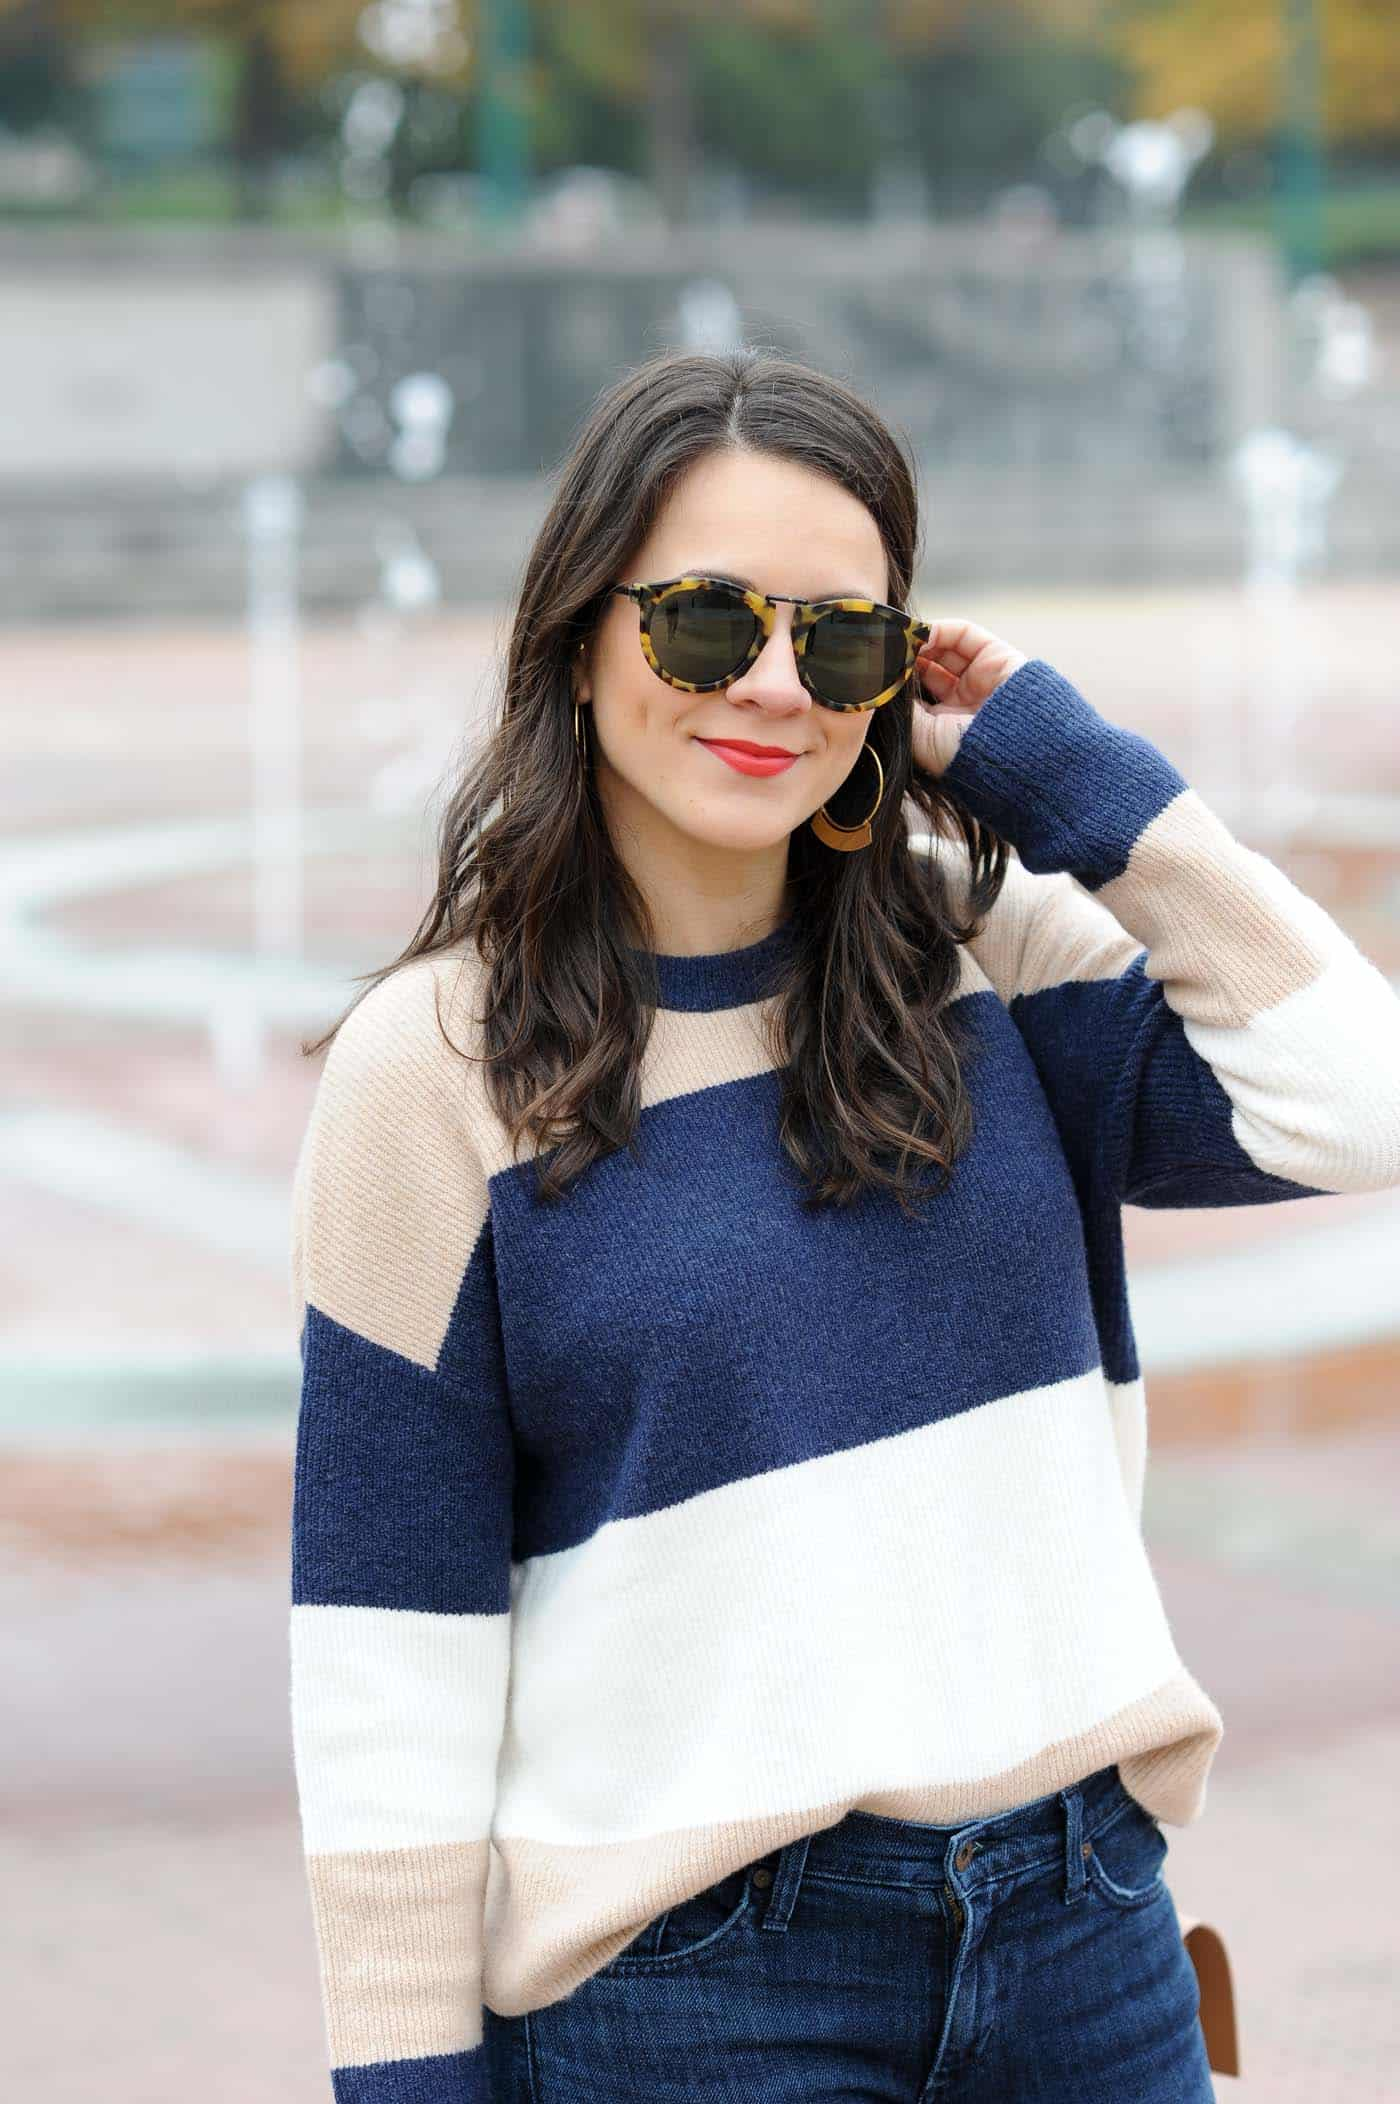 striped sweater, navy and cream outfit ideas - My Style Vita @mystylevita